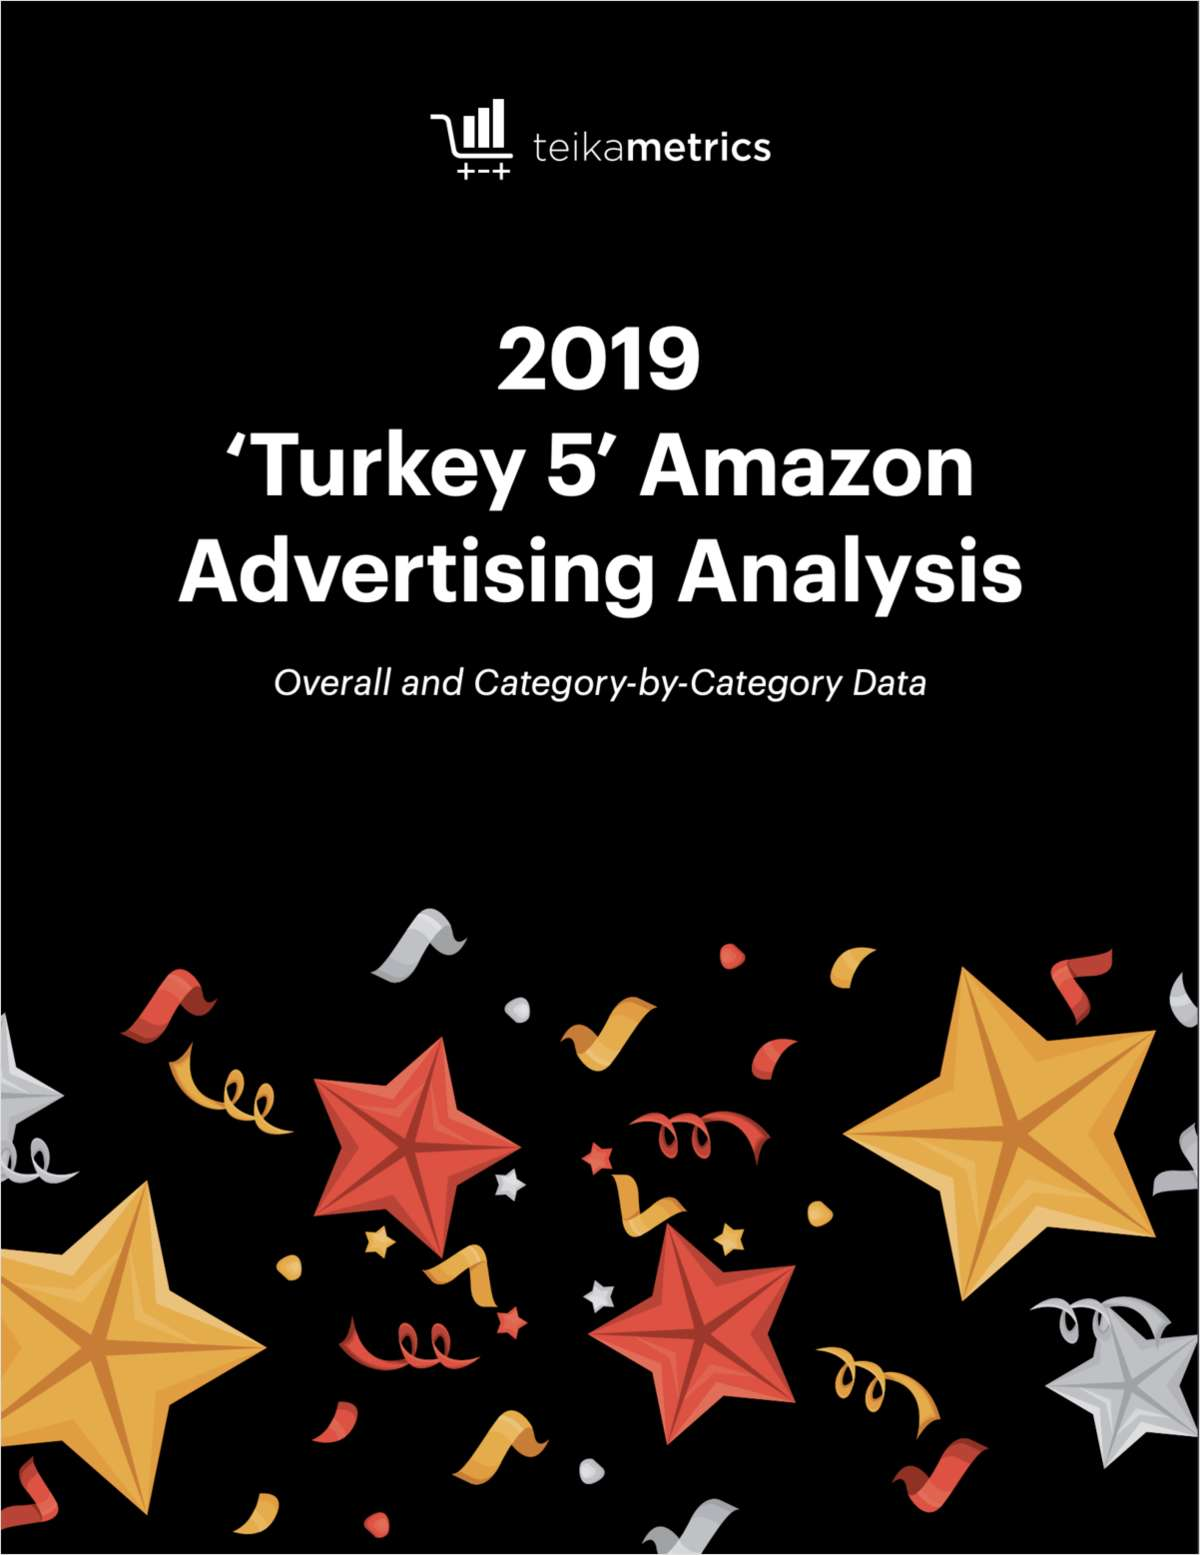 2019 Turkey 5 Amazon Advertising Analysis